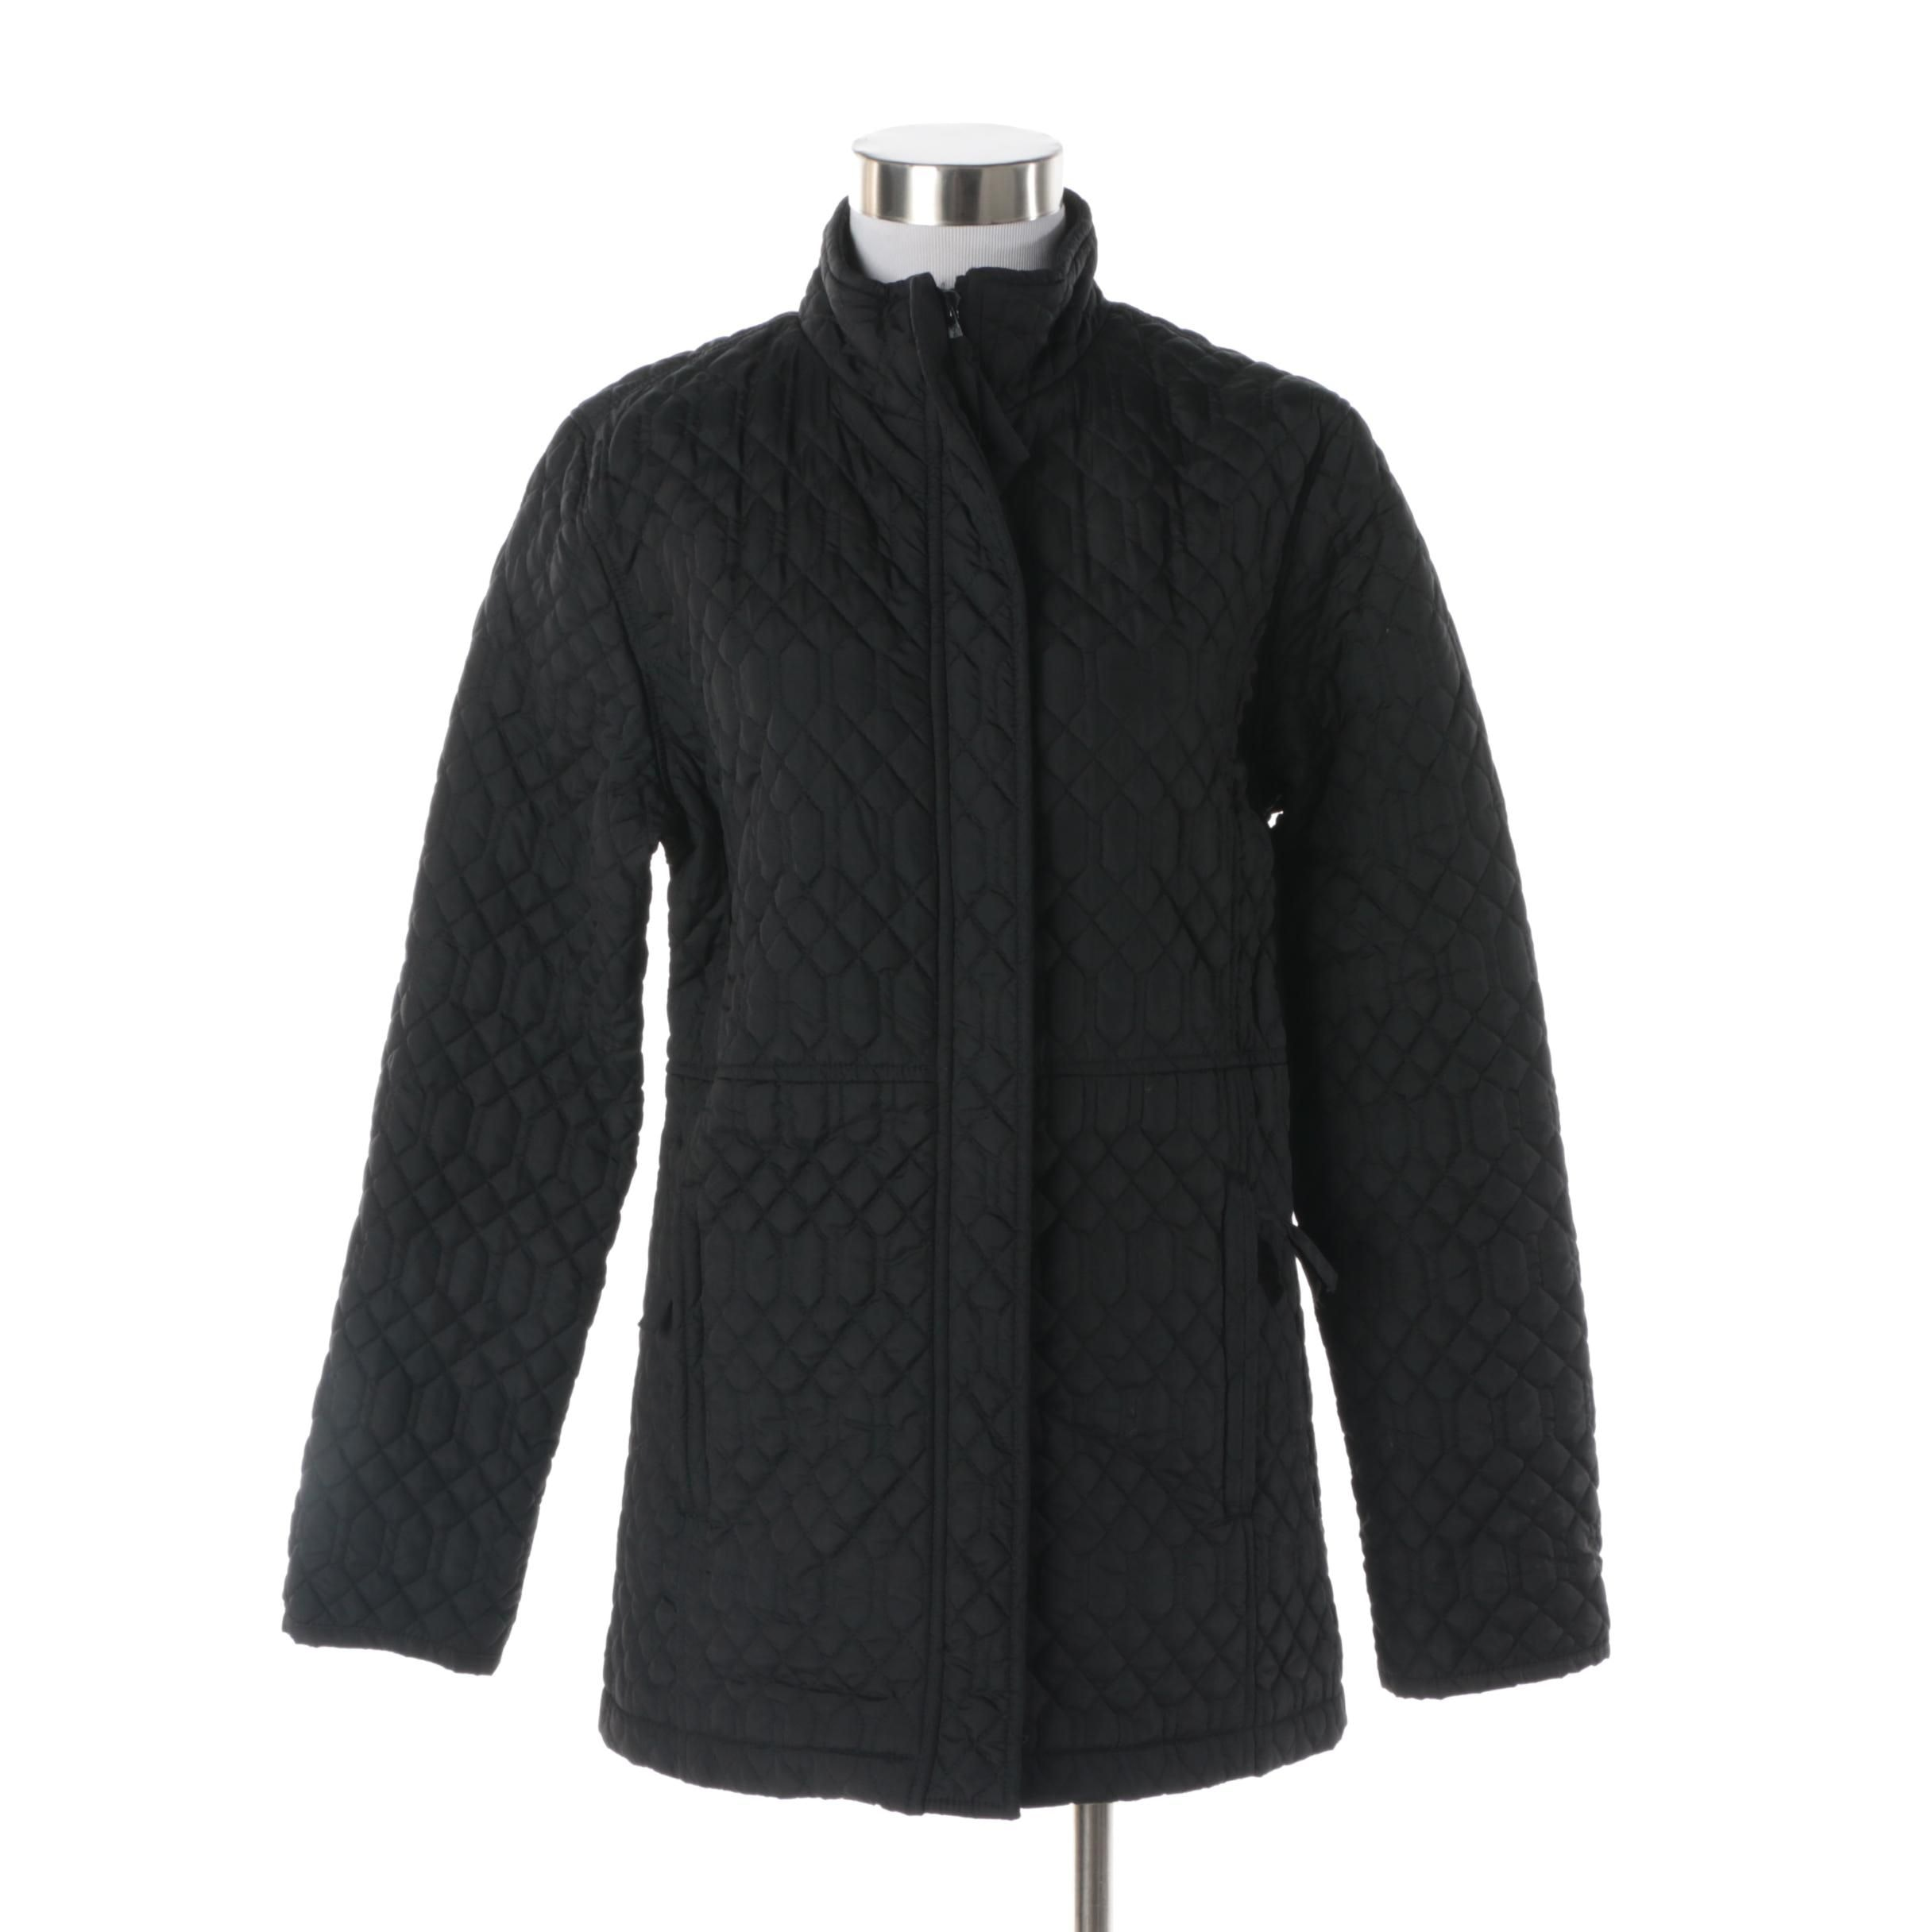 Women's Izod Outerwear Black Quilted Jacket